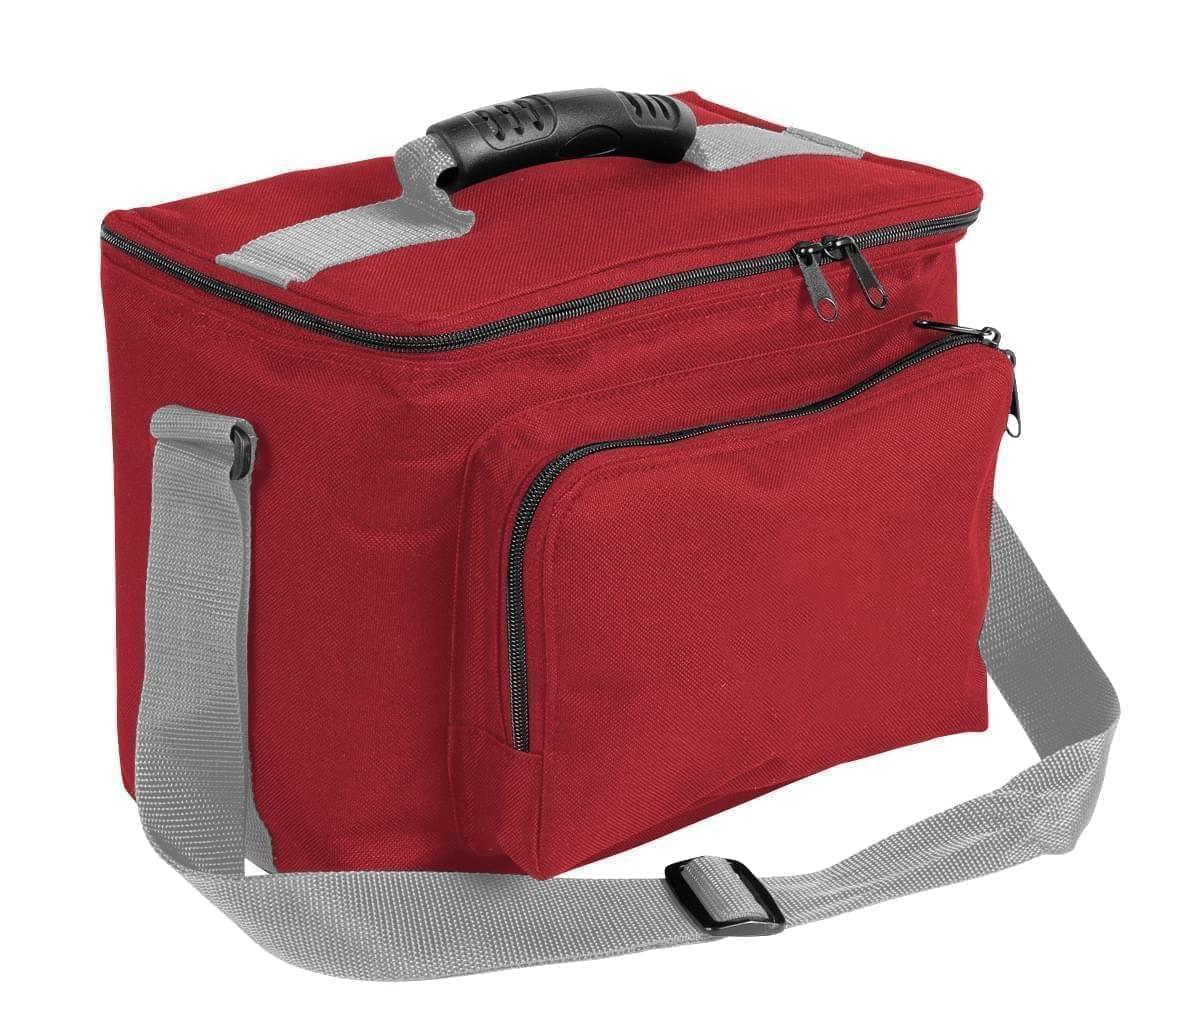 USA Made Nylon Poly Lunch Coolers, Red-Grey, 11001161-AZU